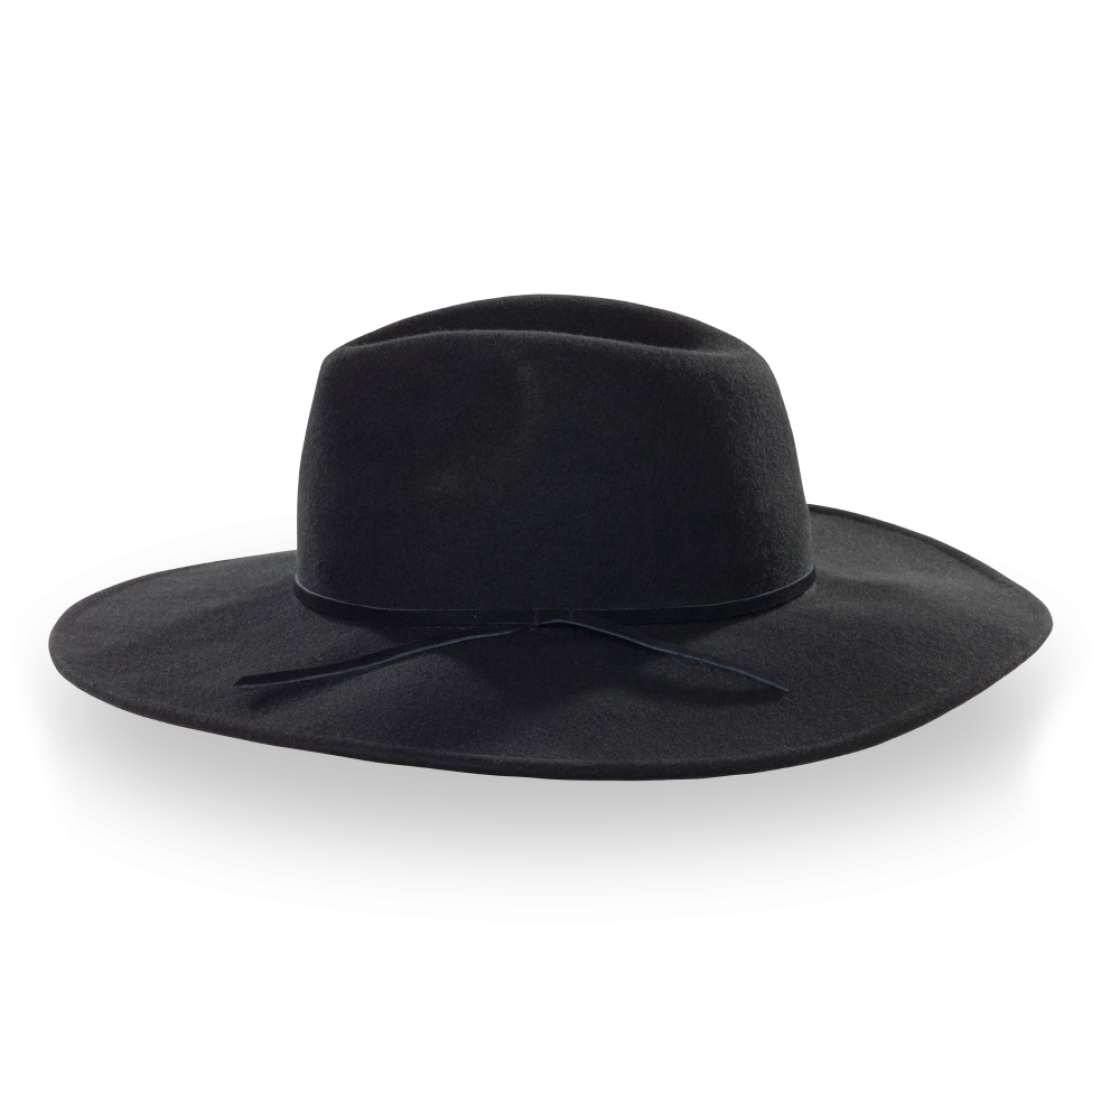 Queen Of Knives Felt Fedora Hat | Goorin Bros. Hat Shop